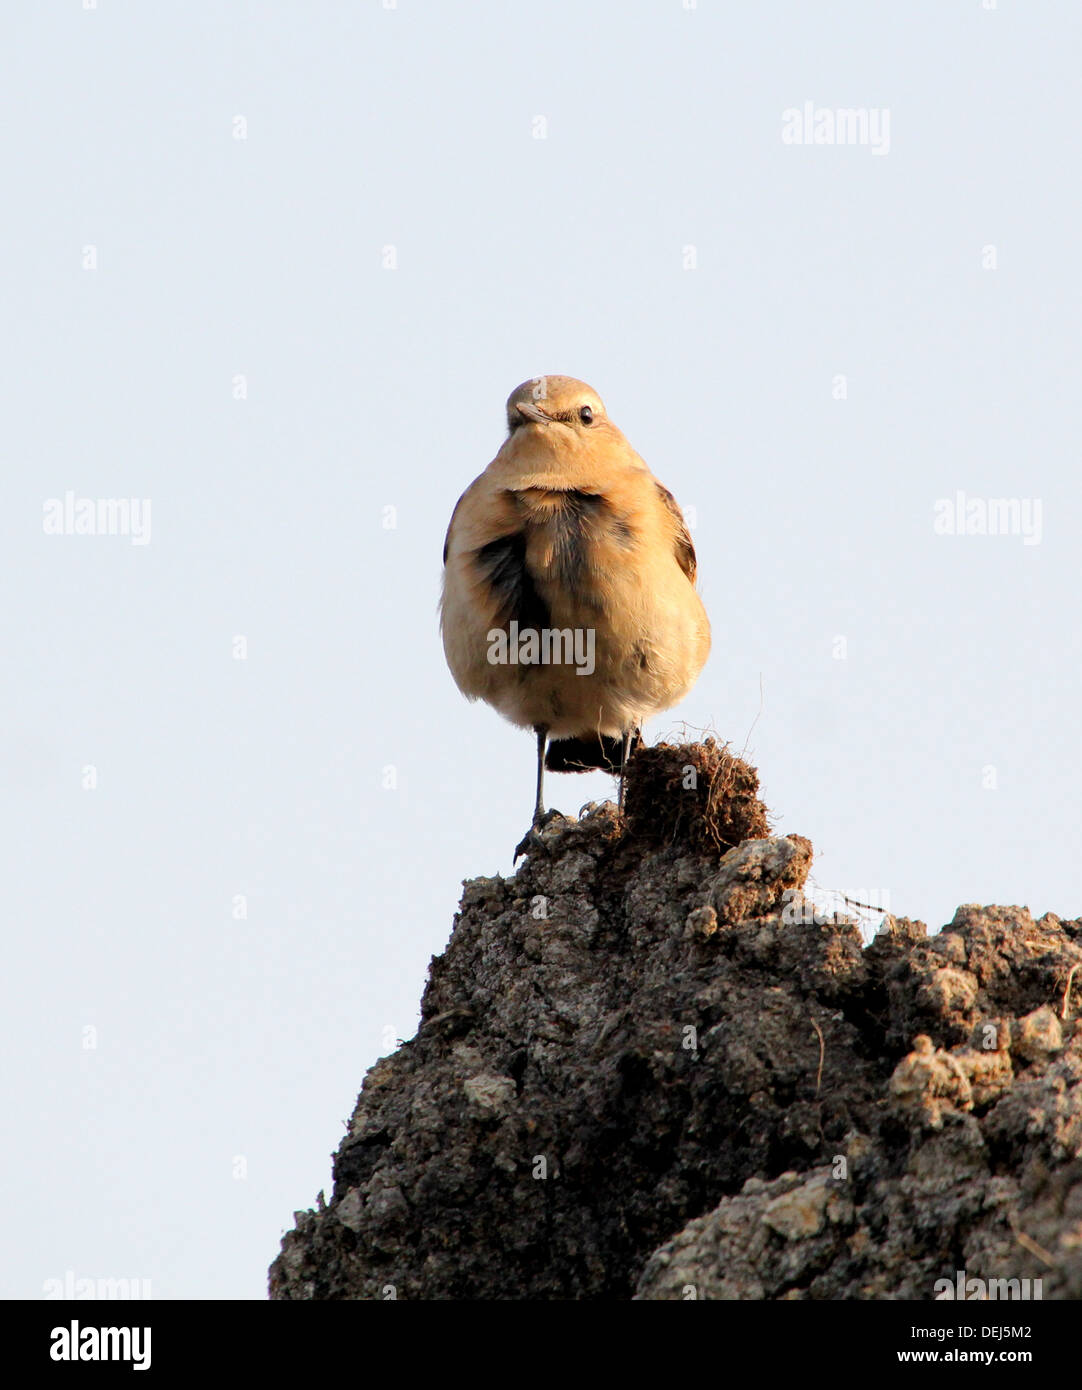 Female Northern Wheatear (Oenanthe Oenanthe) posing on a pile of dirt Stock Photo